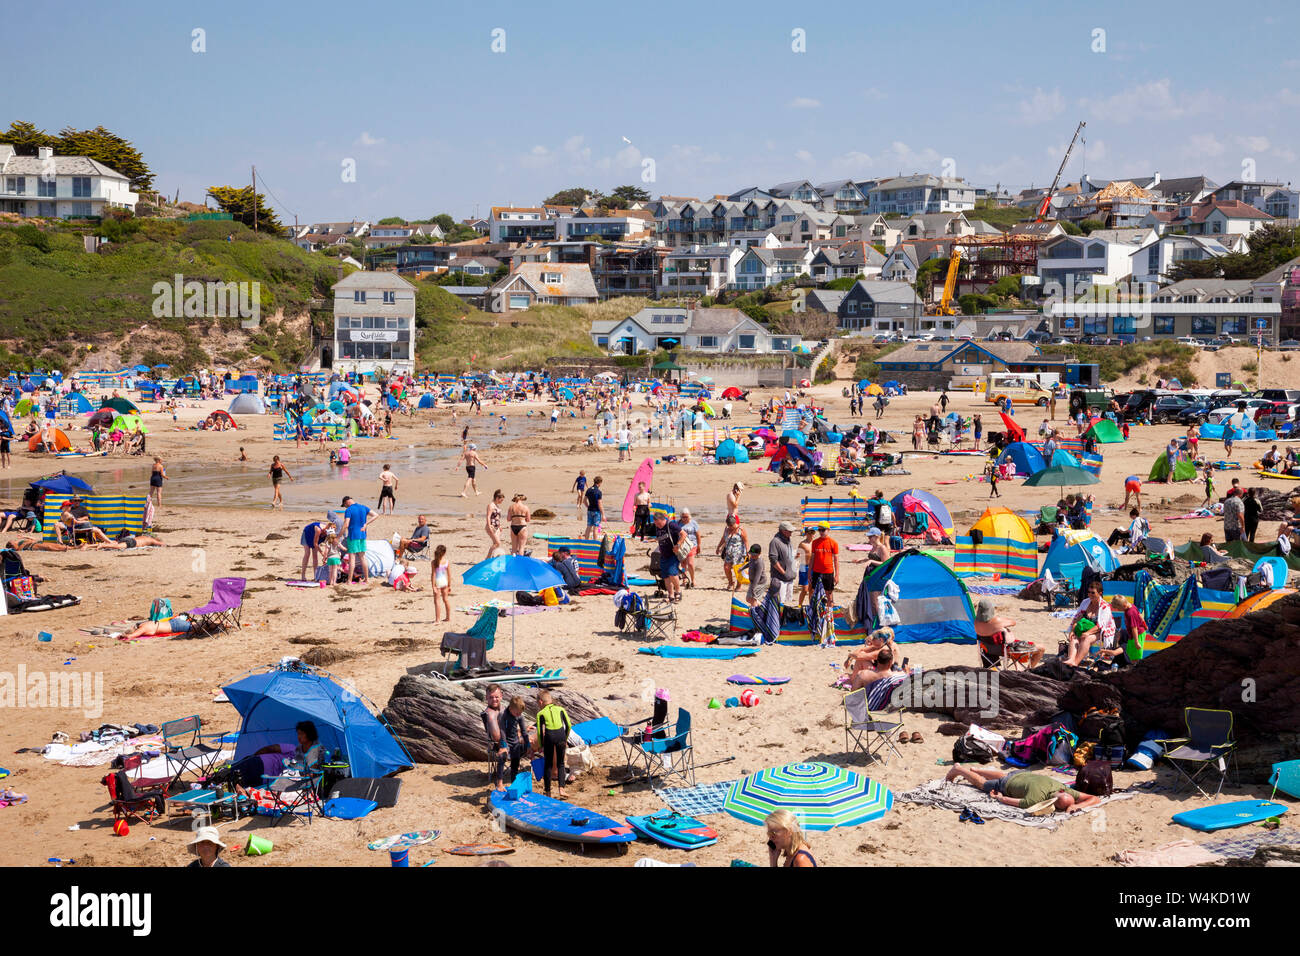 Polzeath, Cornwall. 23rd July 2019. Holidaymakers enjoy the heatwave on a hot and sunny afternoon on Polzeath Beach on North Cornwall's Atlantic coast, Stock Photo